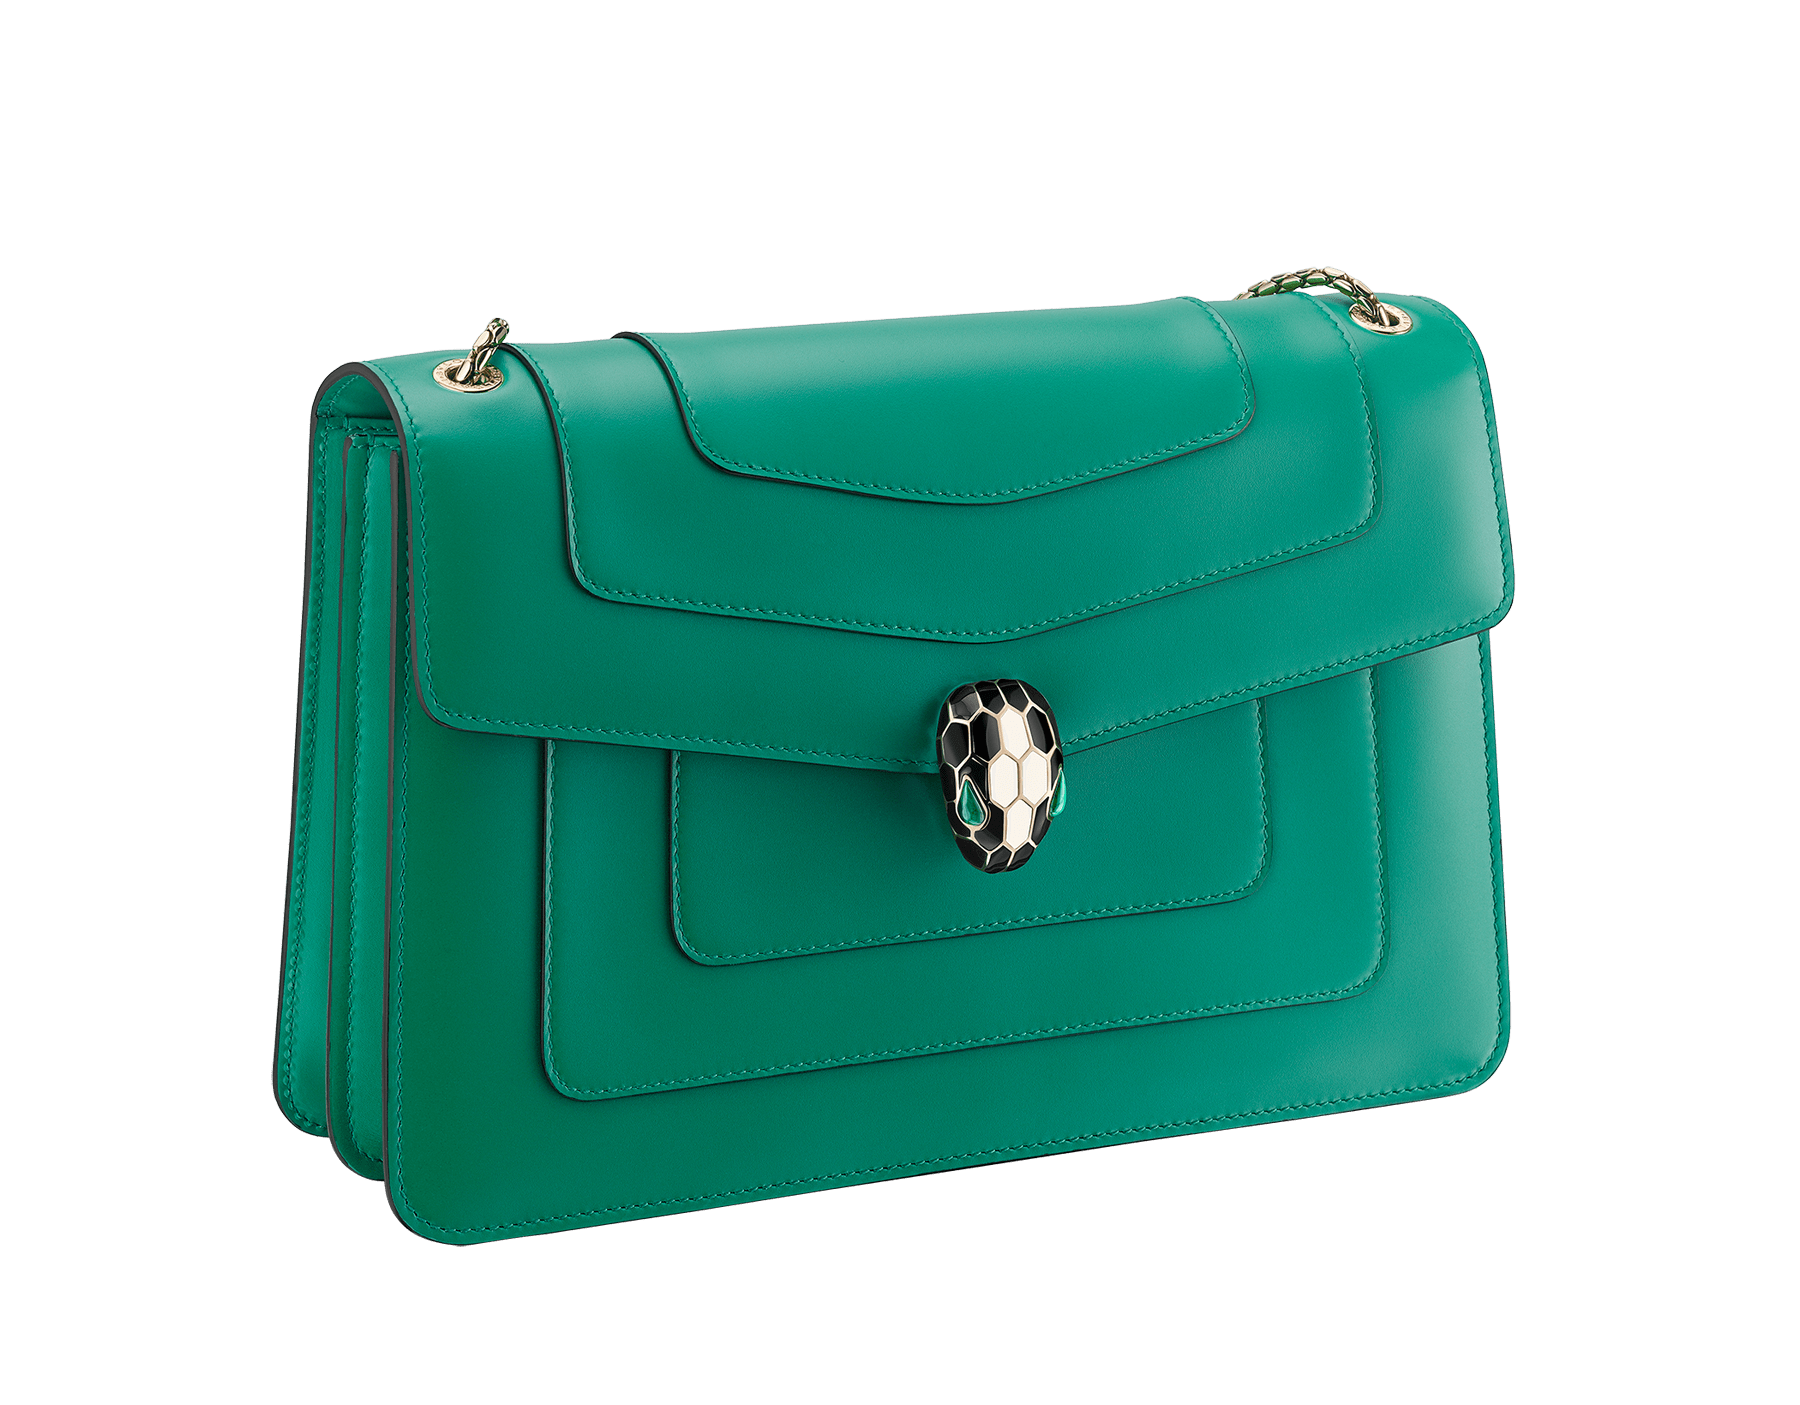 """""""Serpenti Forever"""" shoulder bag in black calf leather with emerald green gros grain internal lining. Iconic snakehead closure in light gold plated brass enriched with black and white agate enamel and green malachite eyes. 1089-Cla image 2"""